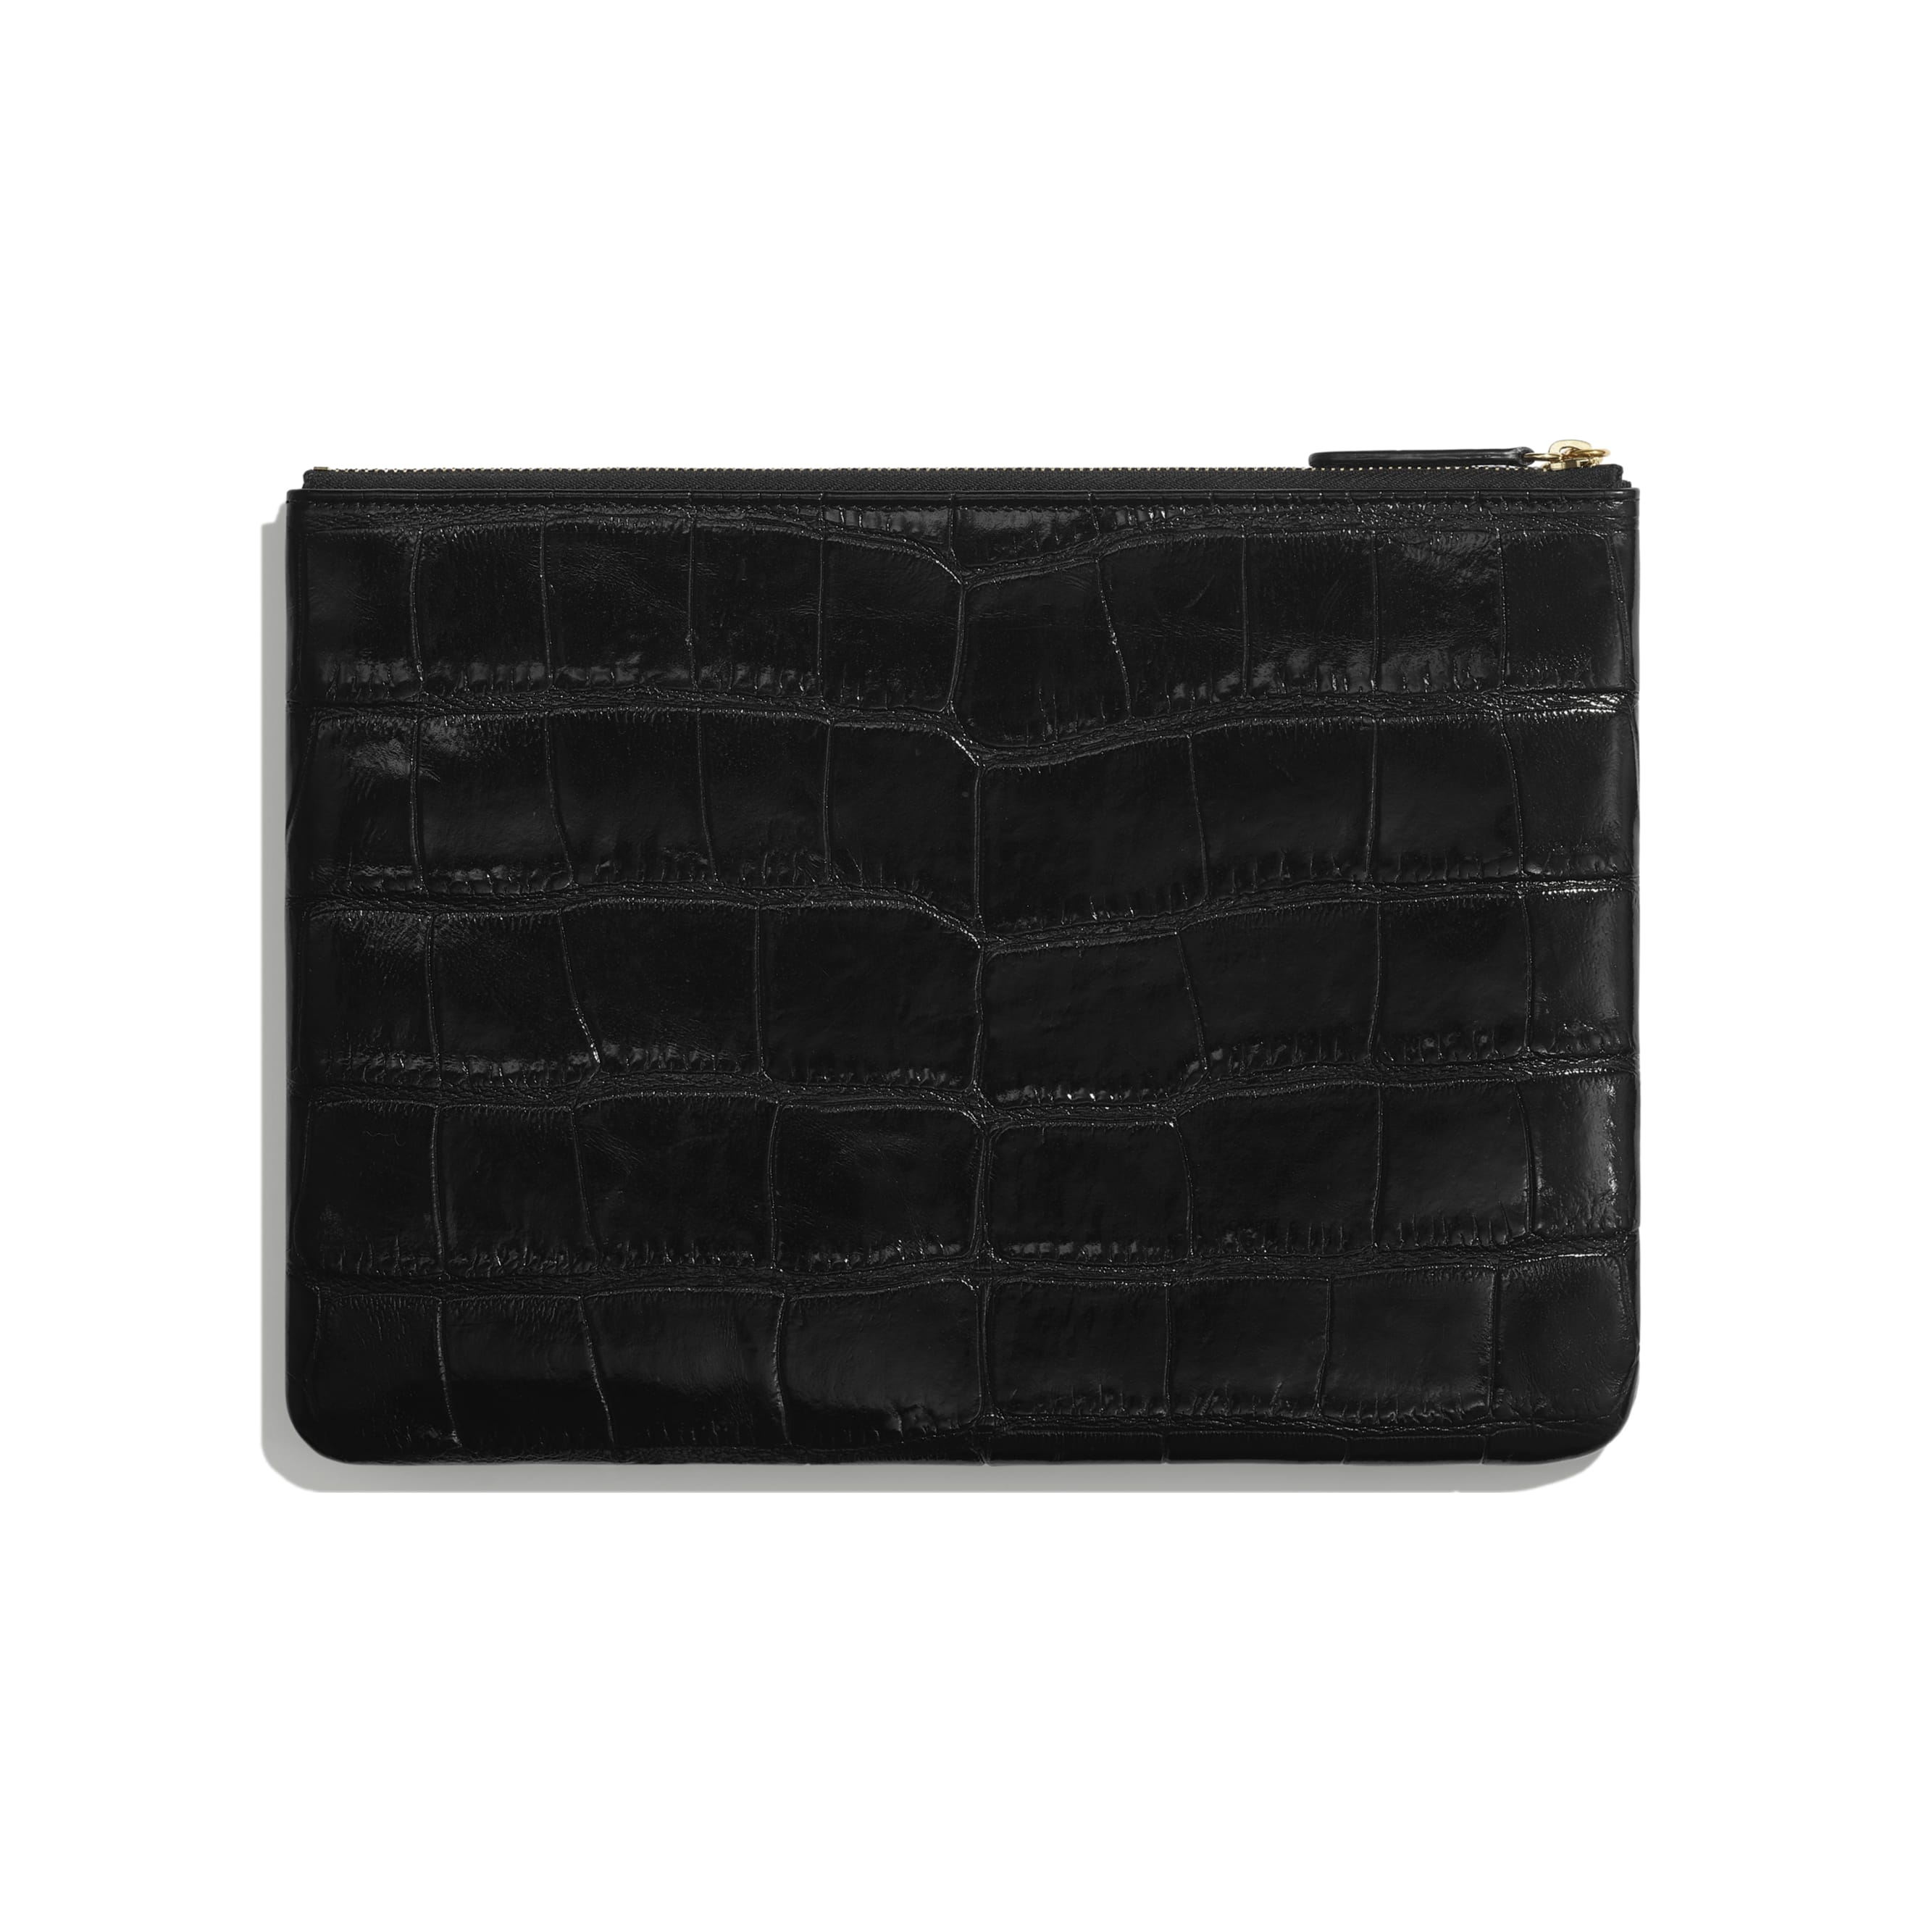 Pouch - Black & Gold - Crocodile Embossed Patent Calfskin & Gold-Tone Metal - Alternative view - see standard sized version